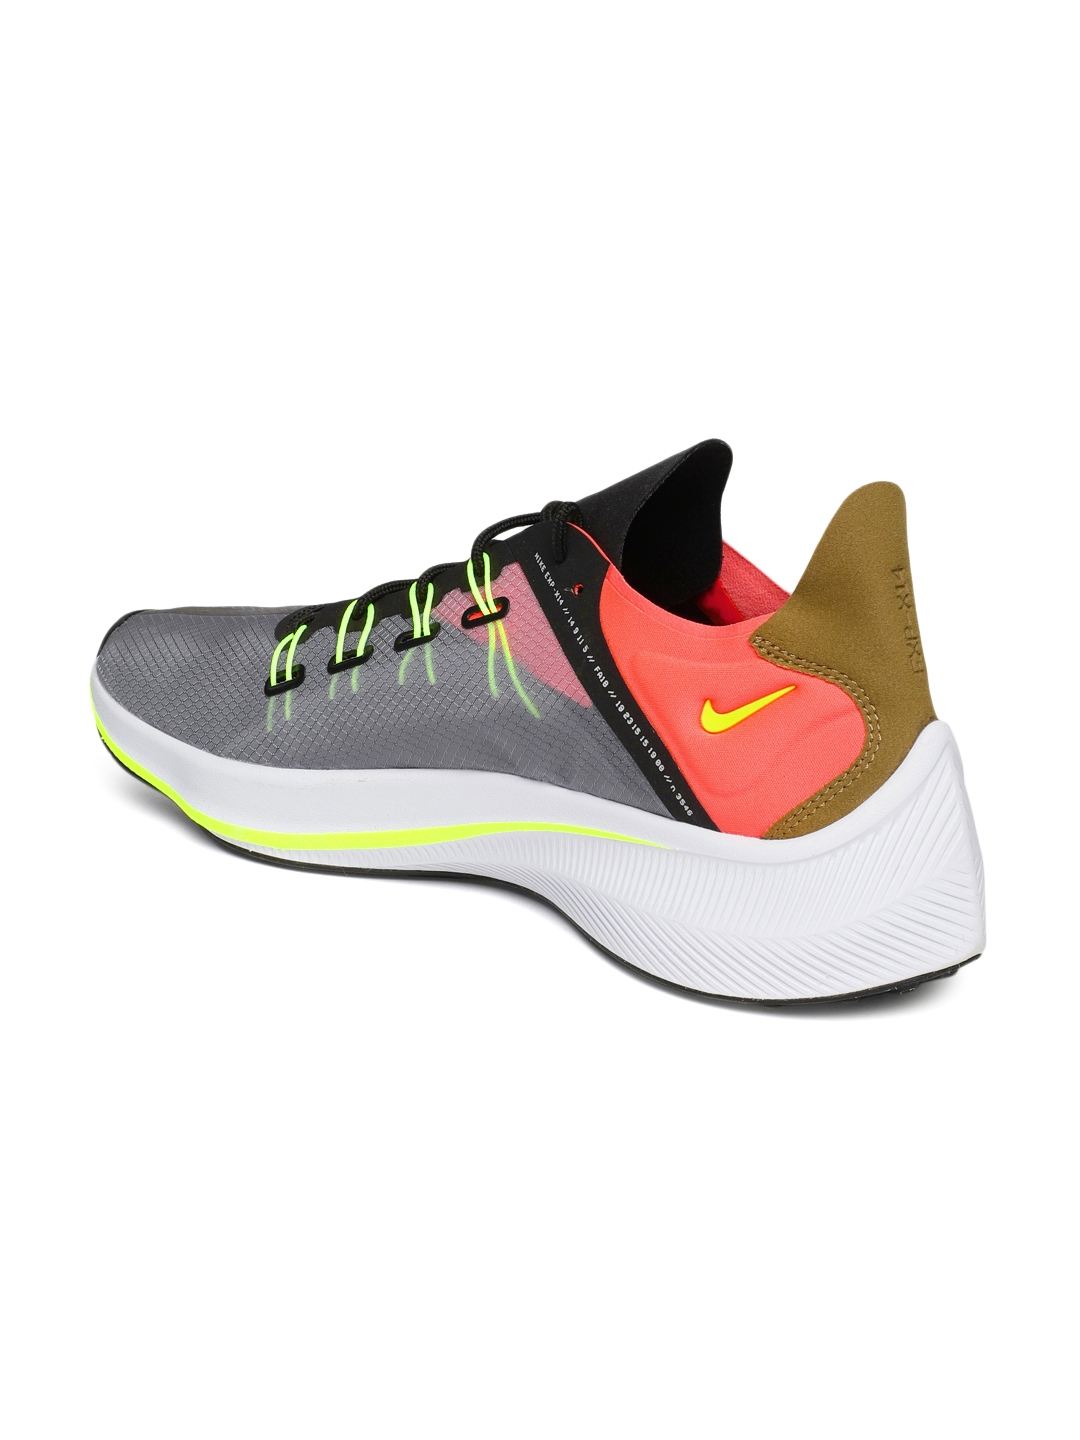 new style 8401f 782d5 Nike Men Grey   Fluorescent Orange Printed EXP-X14 Running Shoes